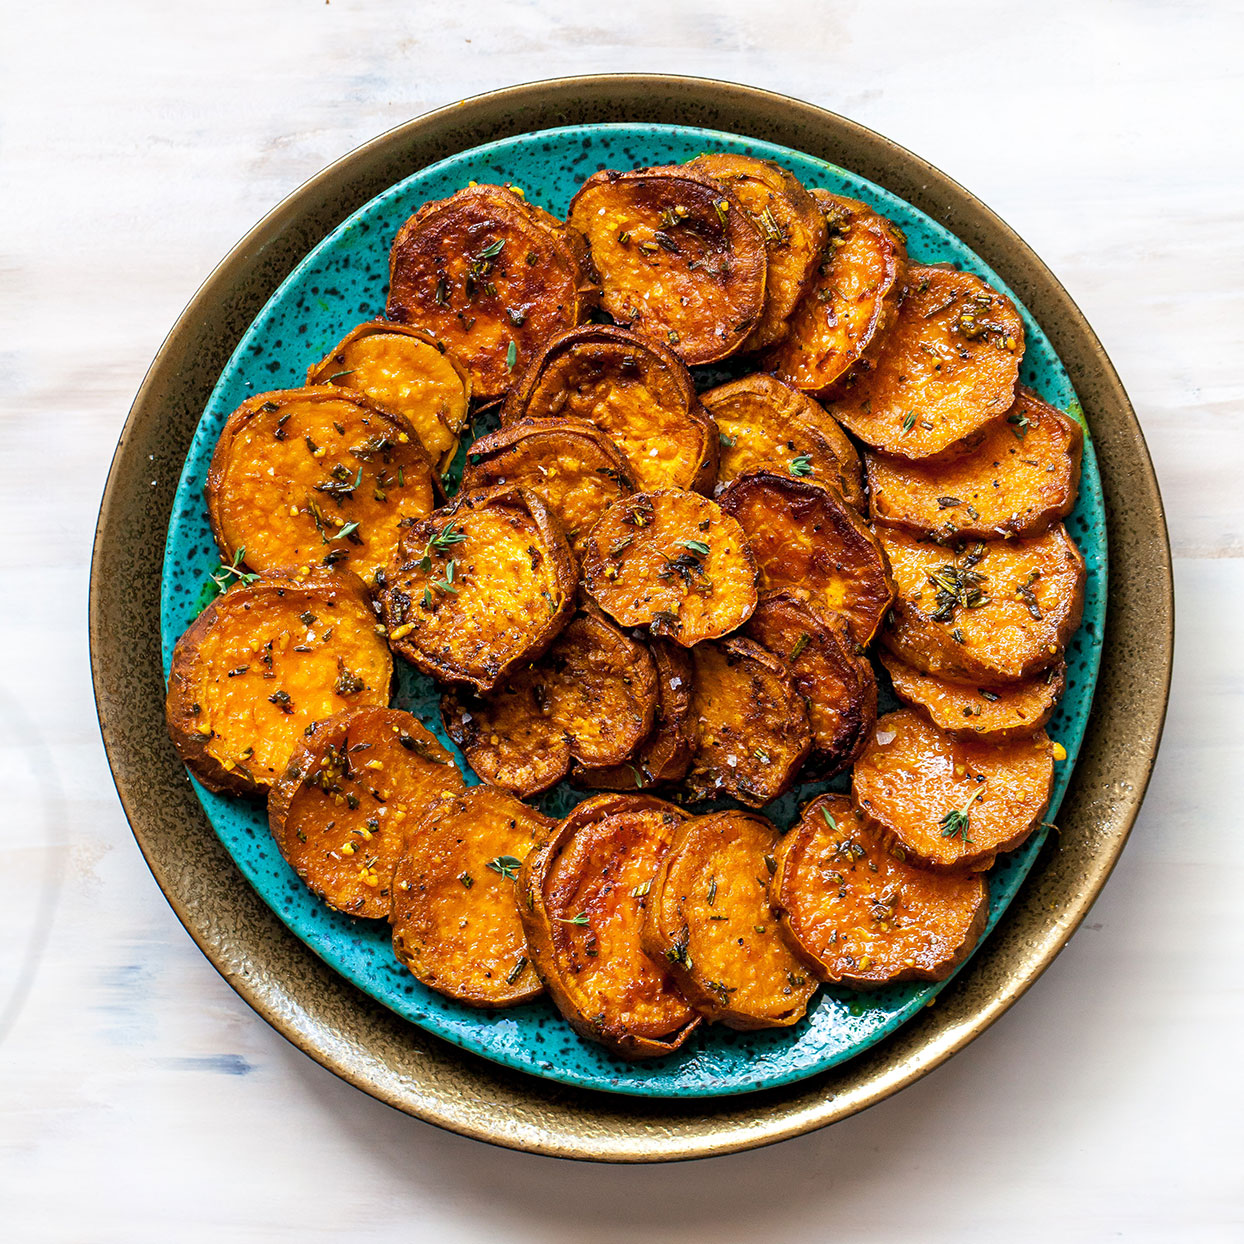 Melting Sweet Potatoes with Herbs & Garlic Carolyn Casner